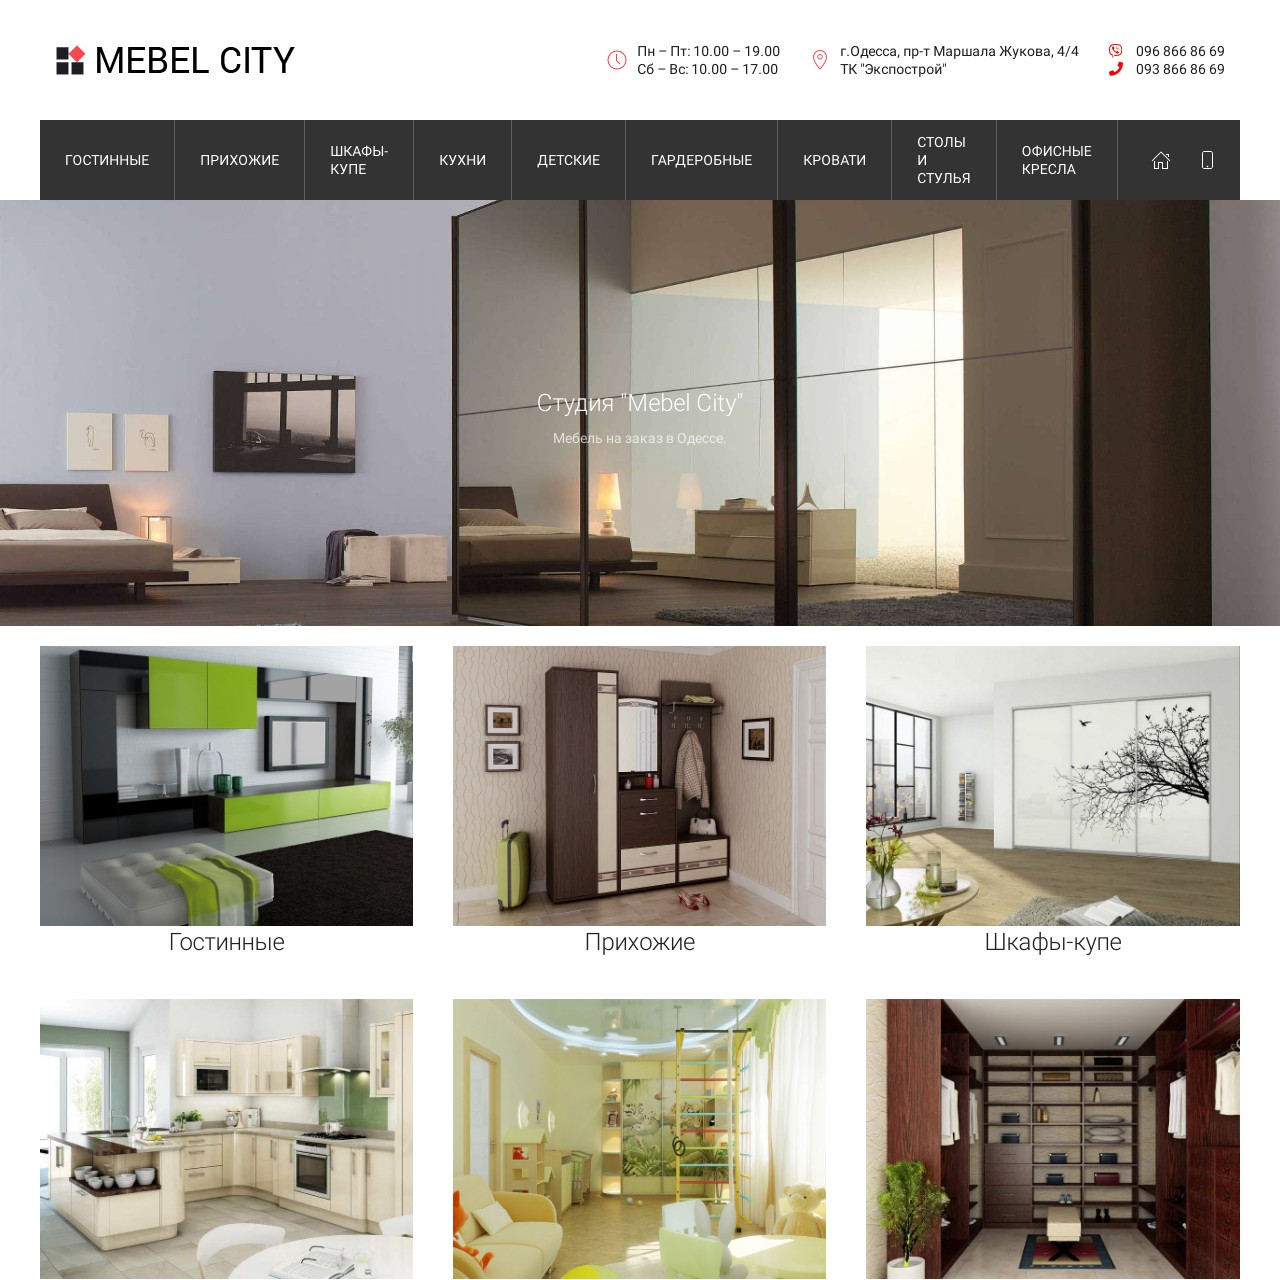 www.mebel-city.com.ua